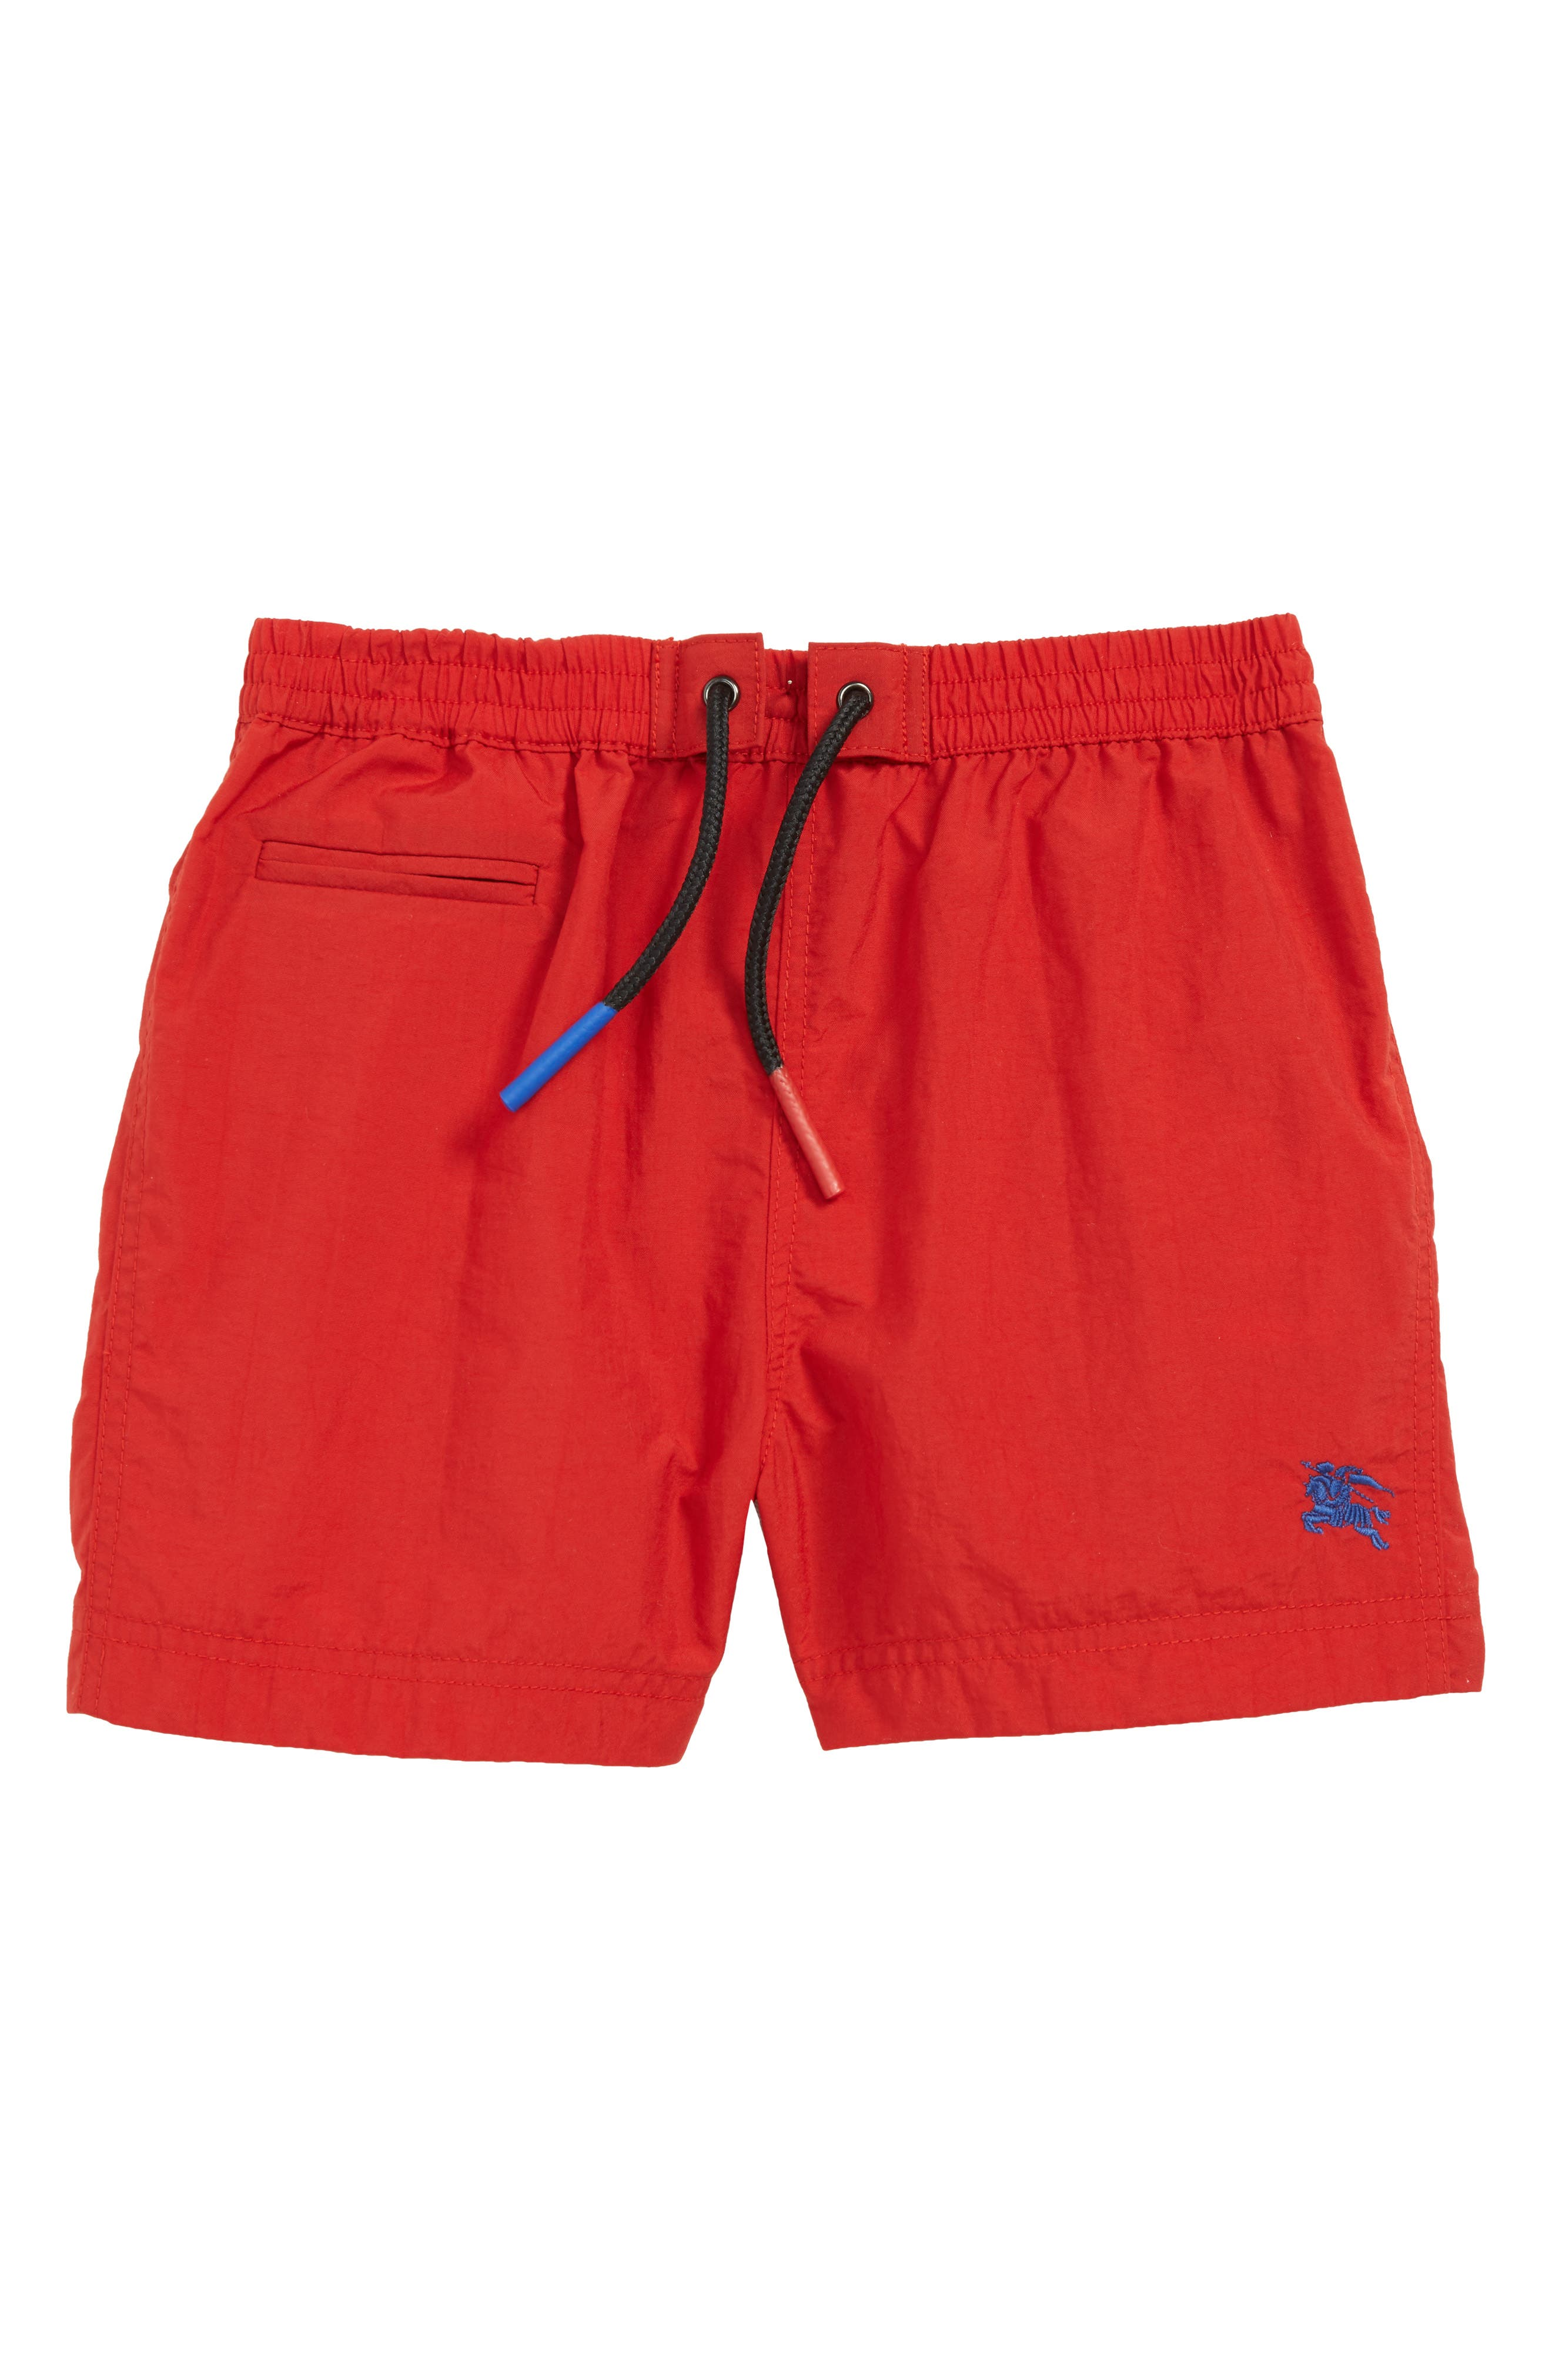 Galvin Swim Trunks,                         Main,                         color, MILITARY RED